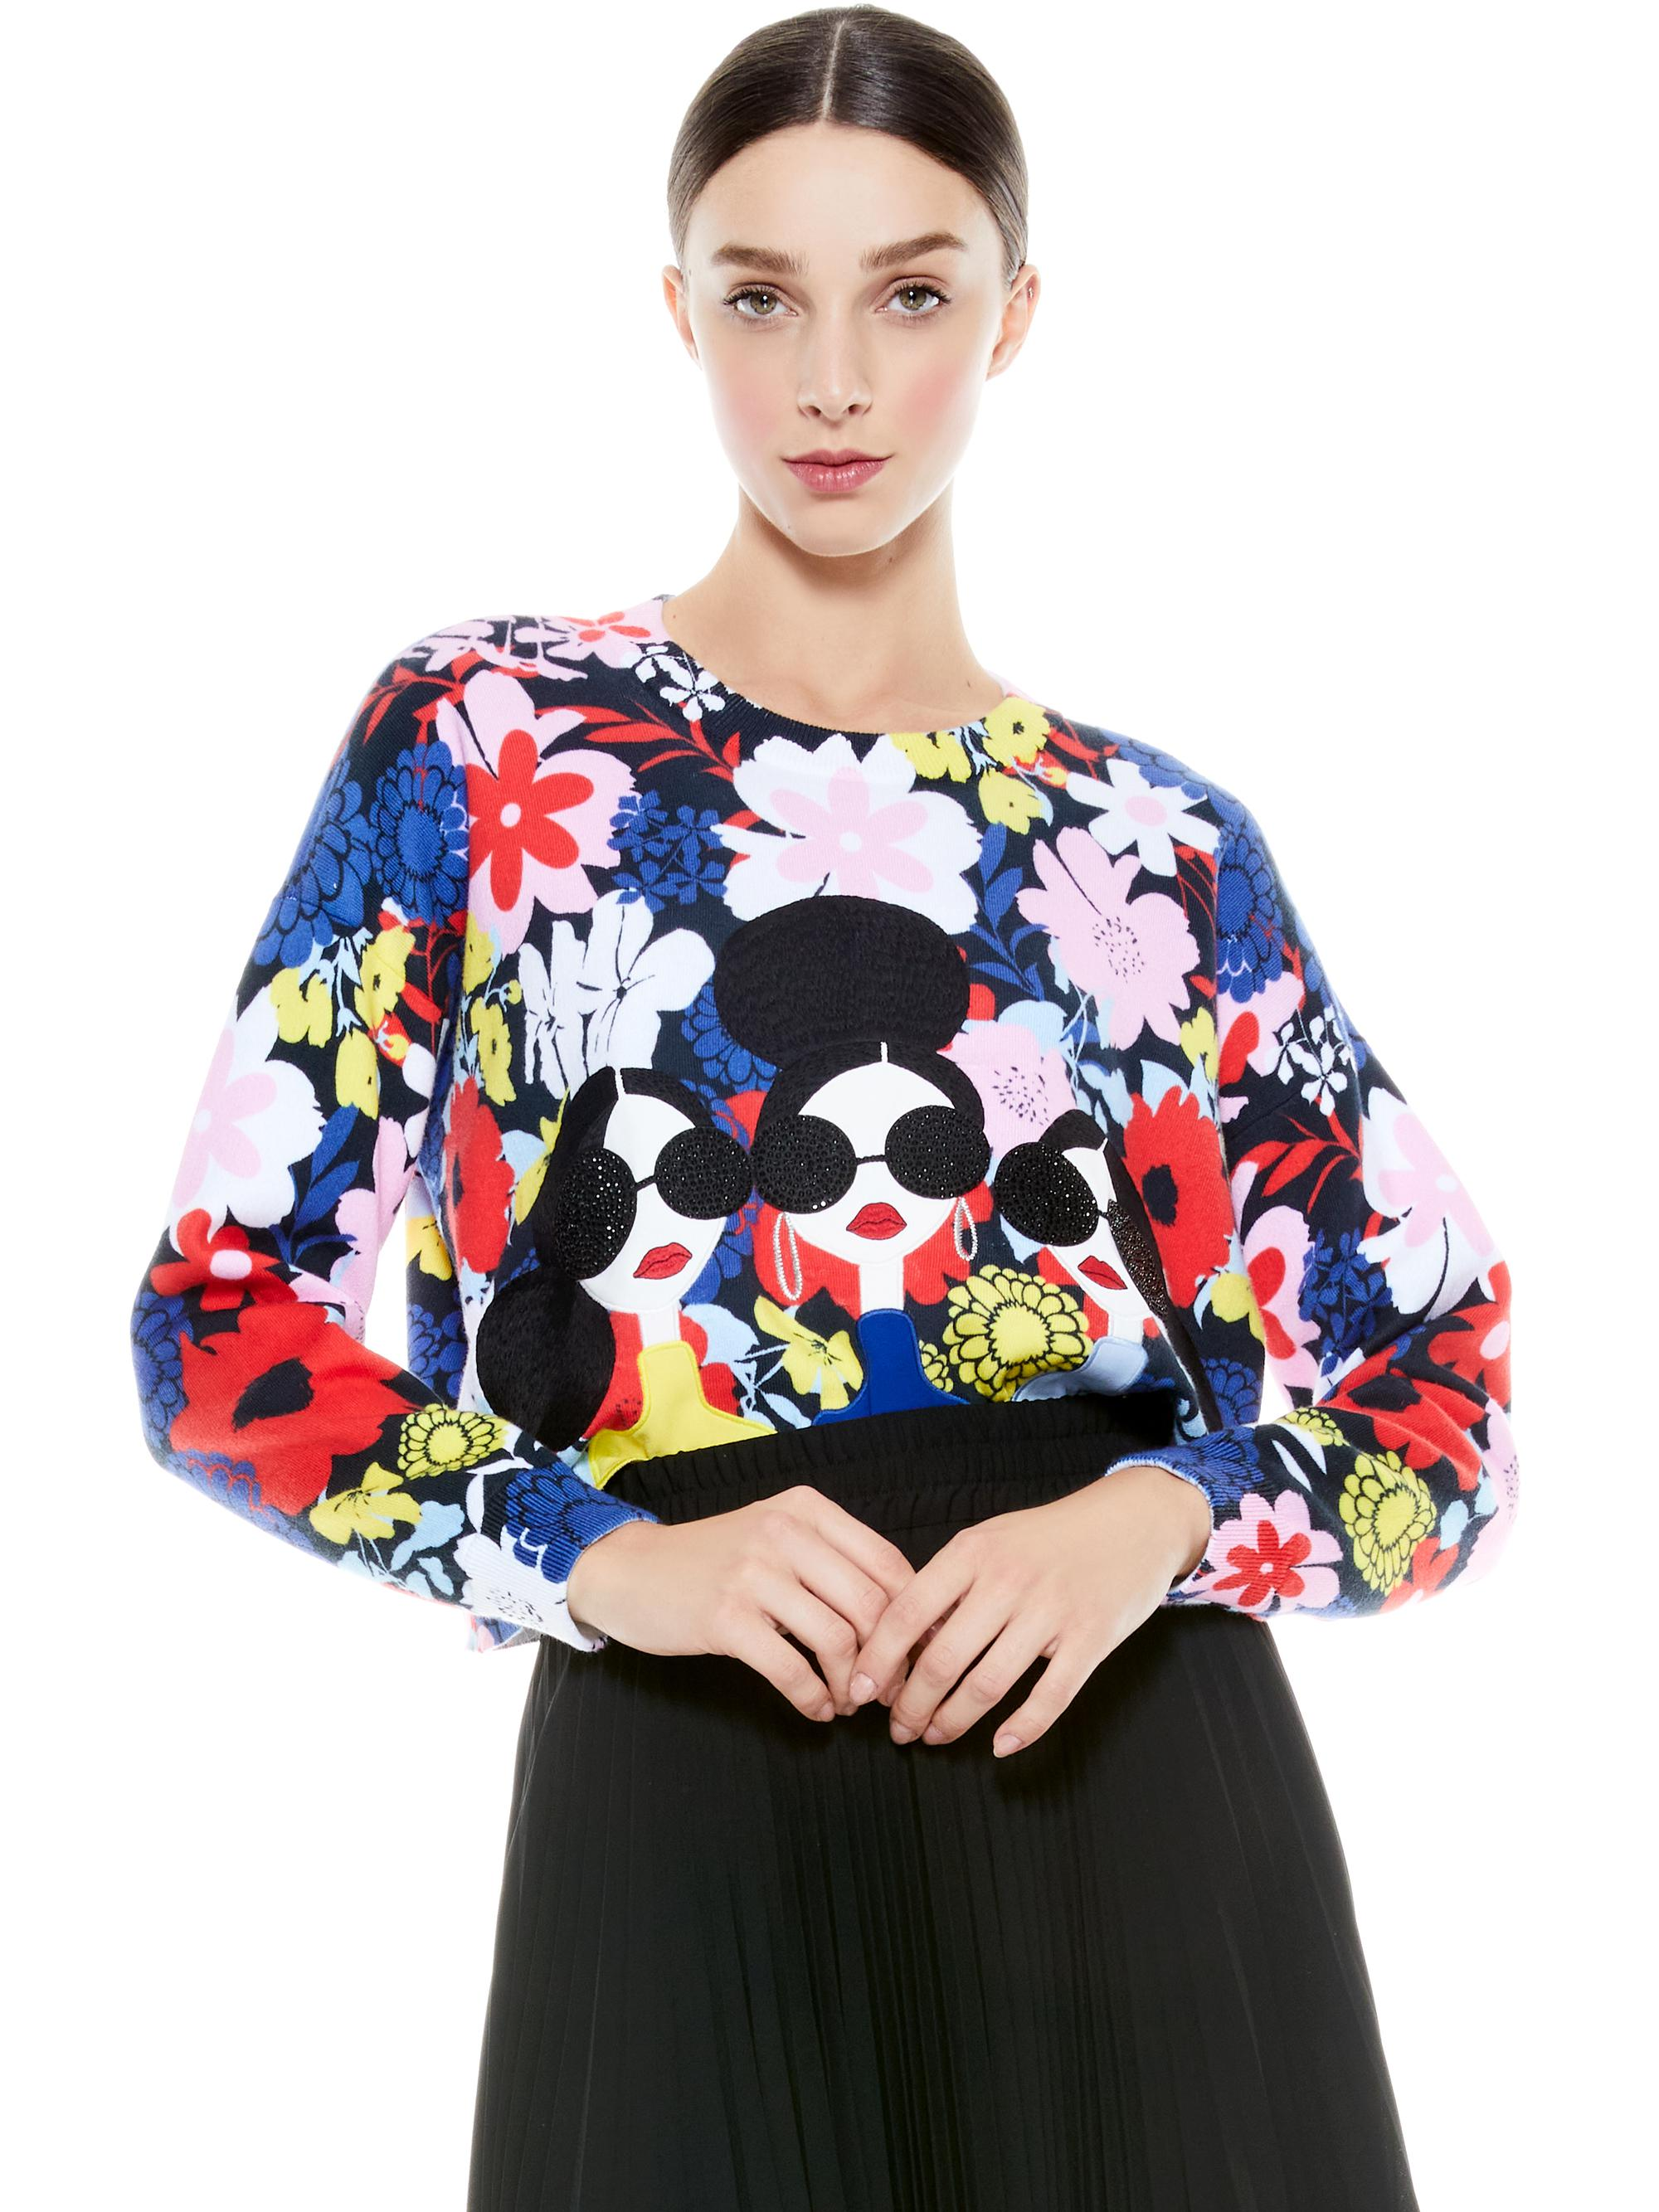 NYLA STACEFACE PULLOVER